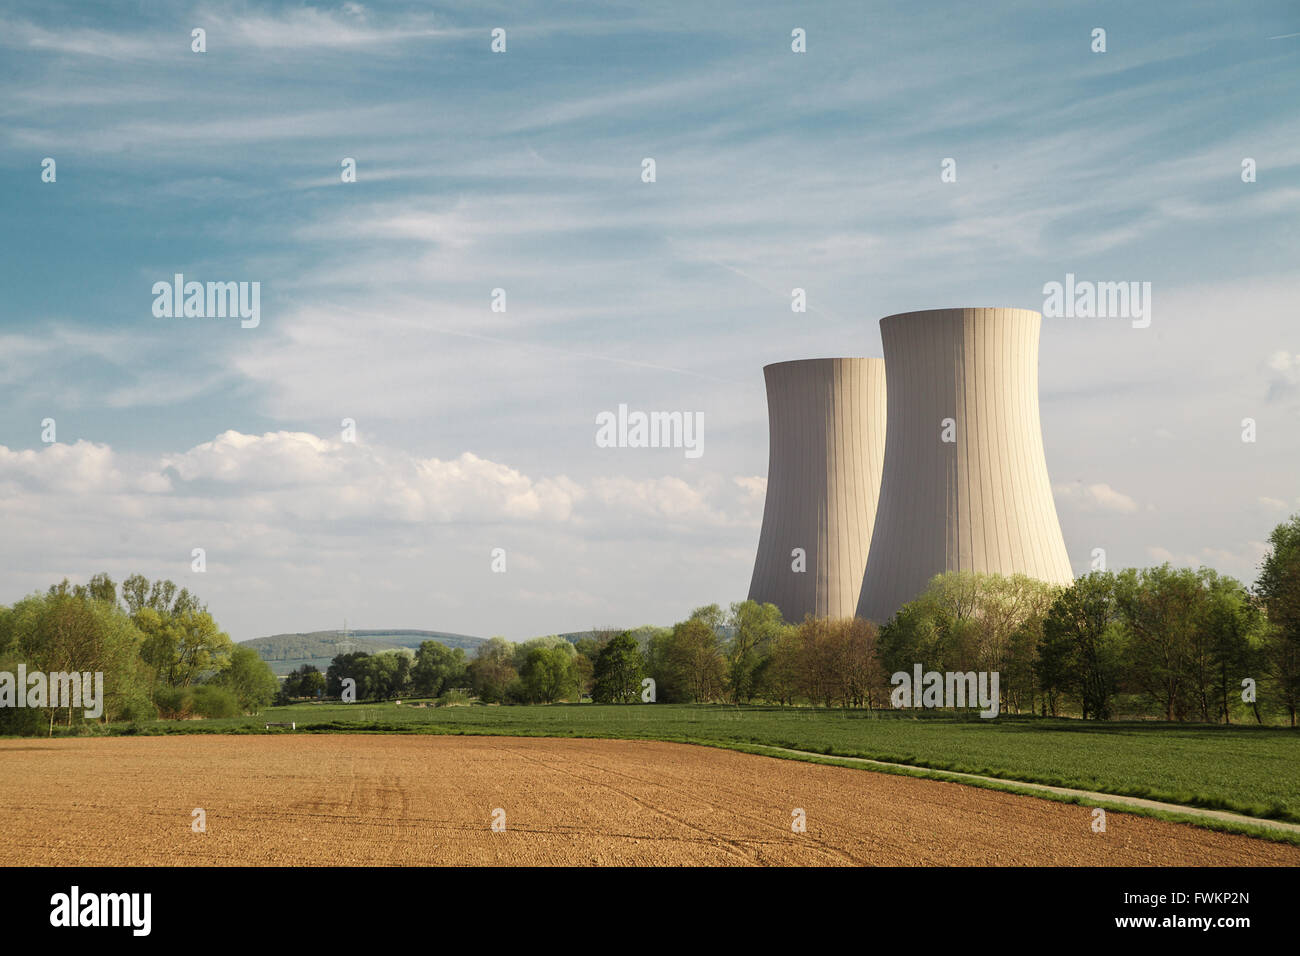 Nuclear power station Grohnde - Stock Image